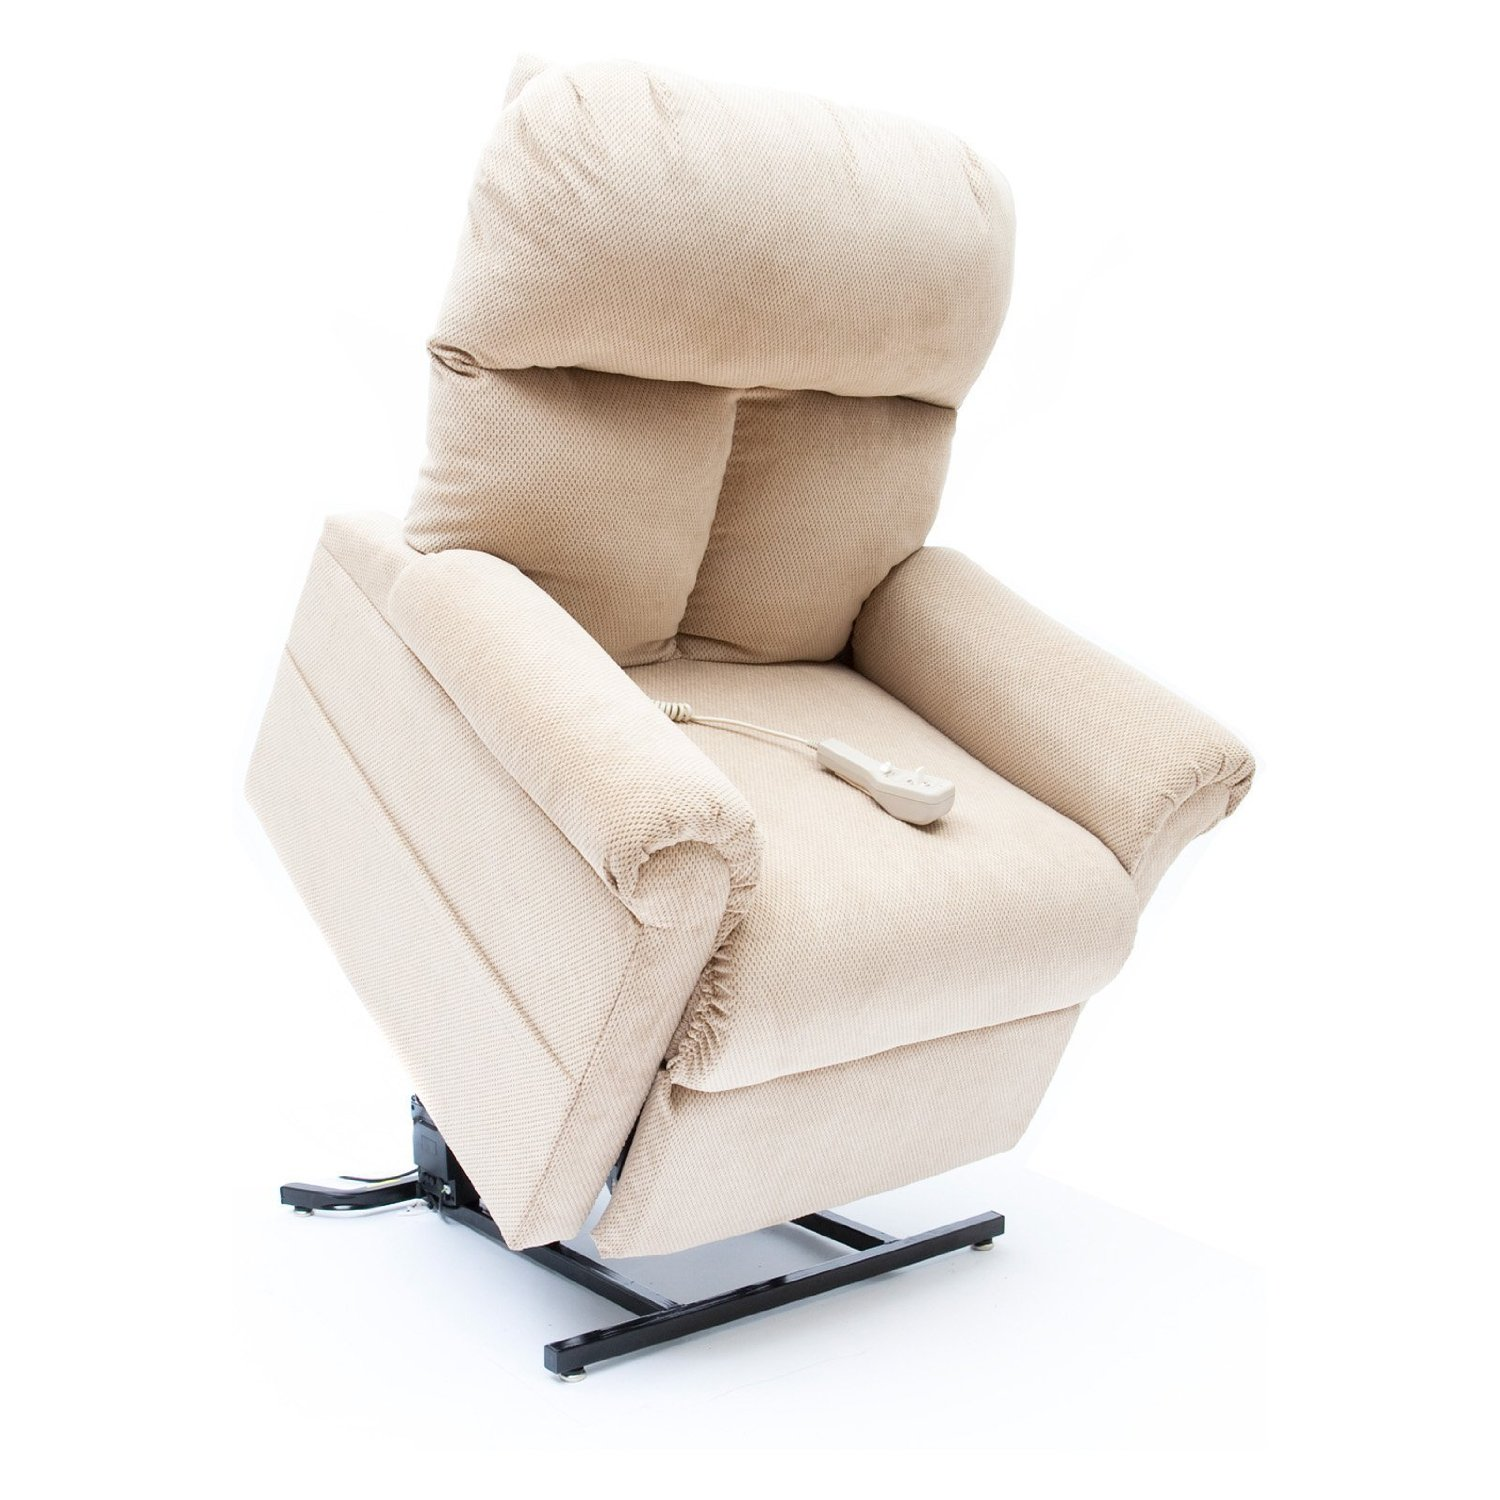 Power Lift Chair New Fawn Tan Fabric Easy Comfort Lc 100 Power Lift Chair